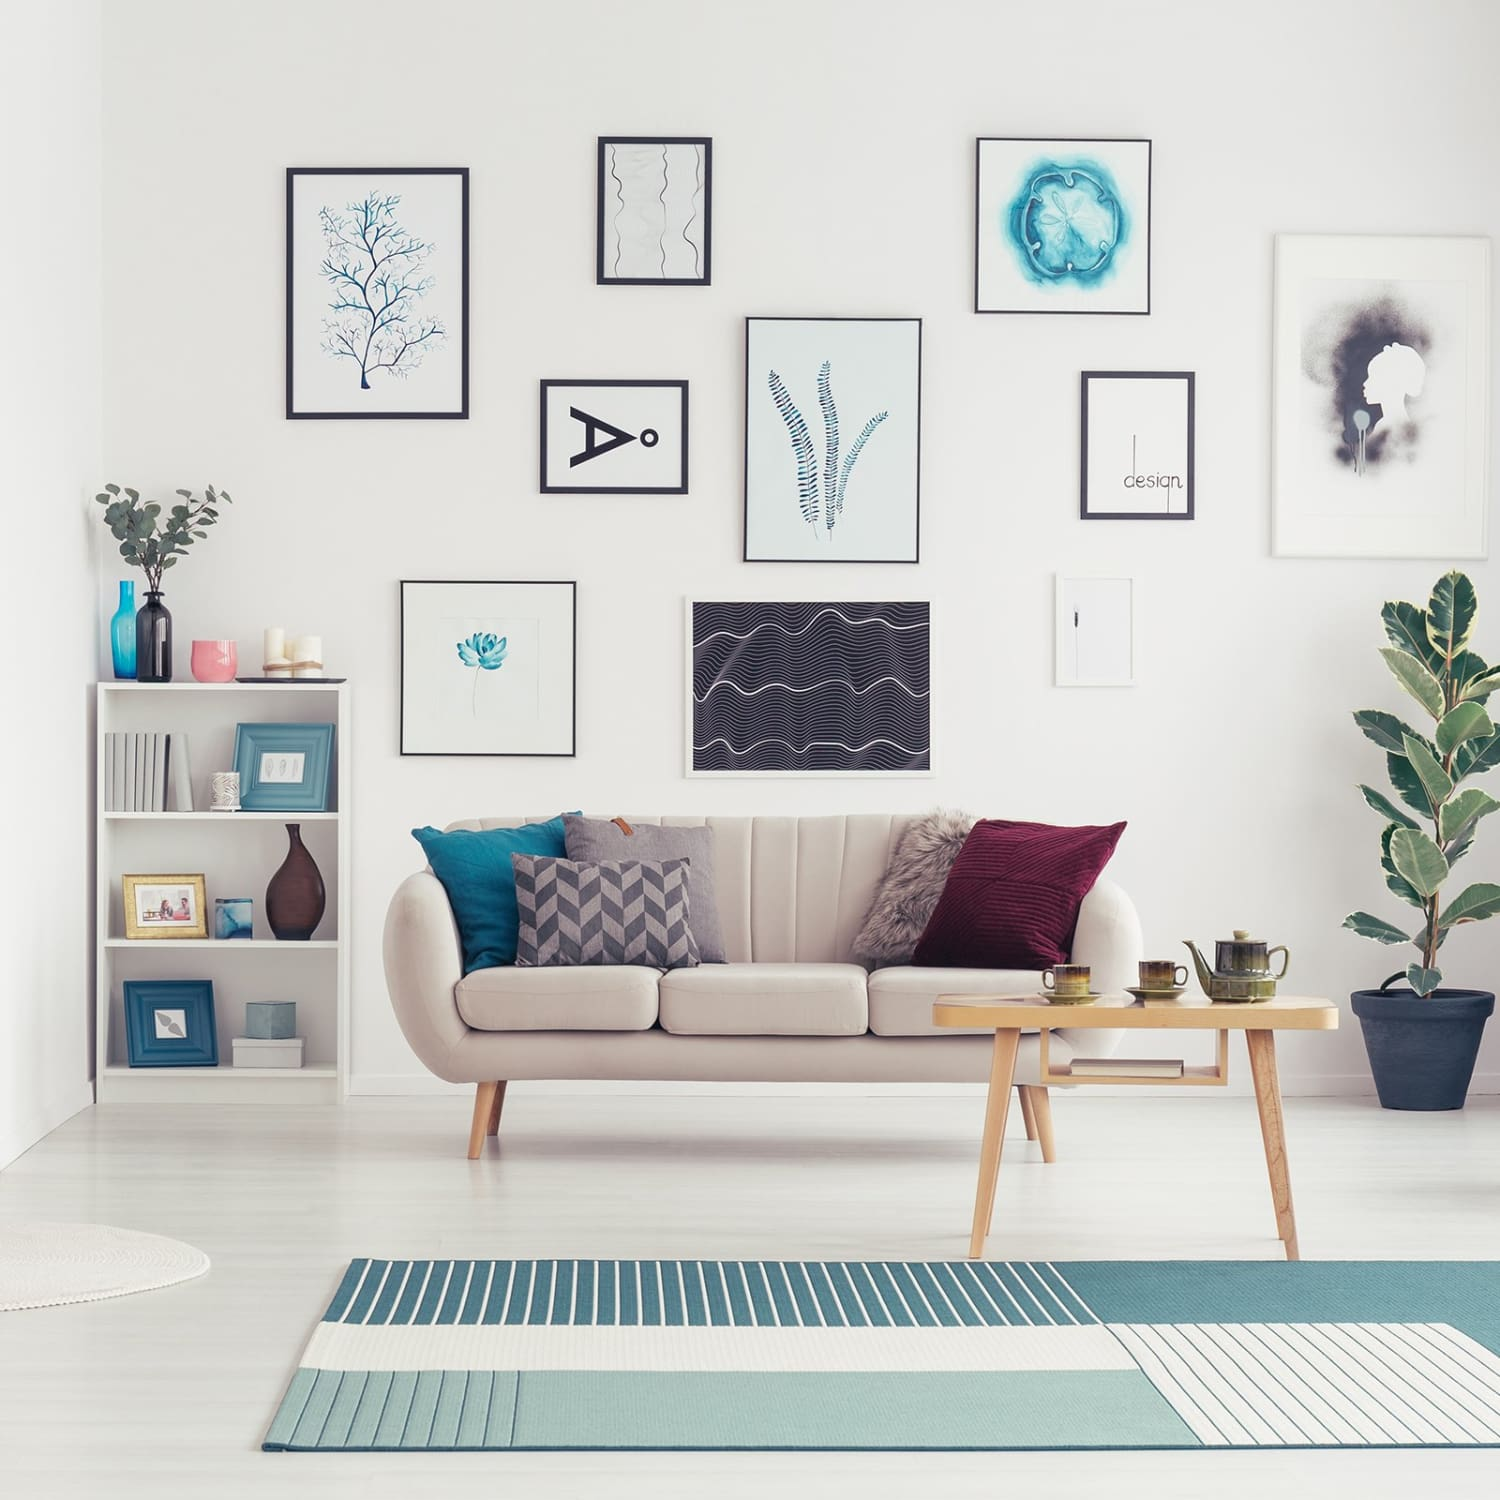 10 Tips How to Decorate Your Living Room